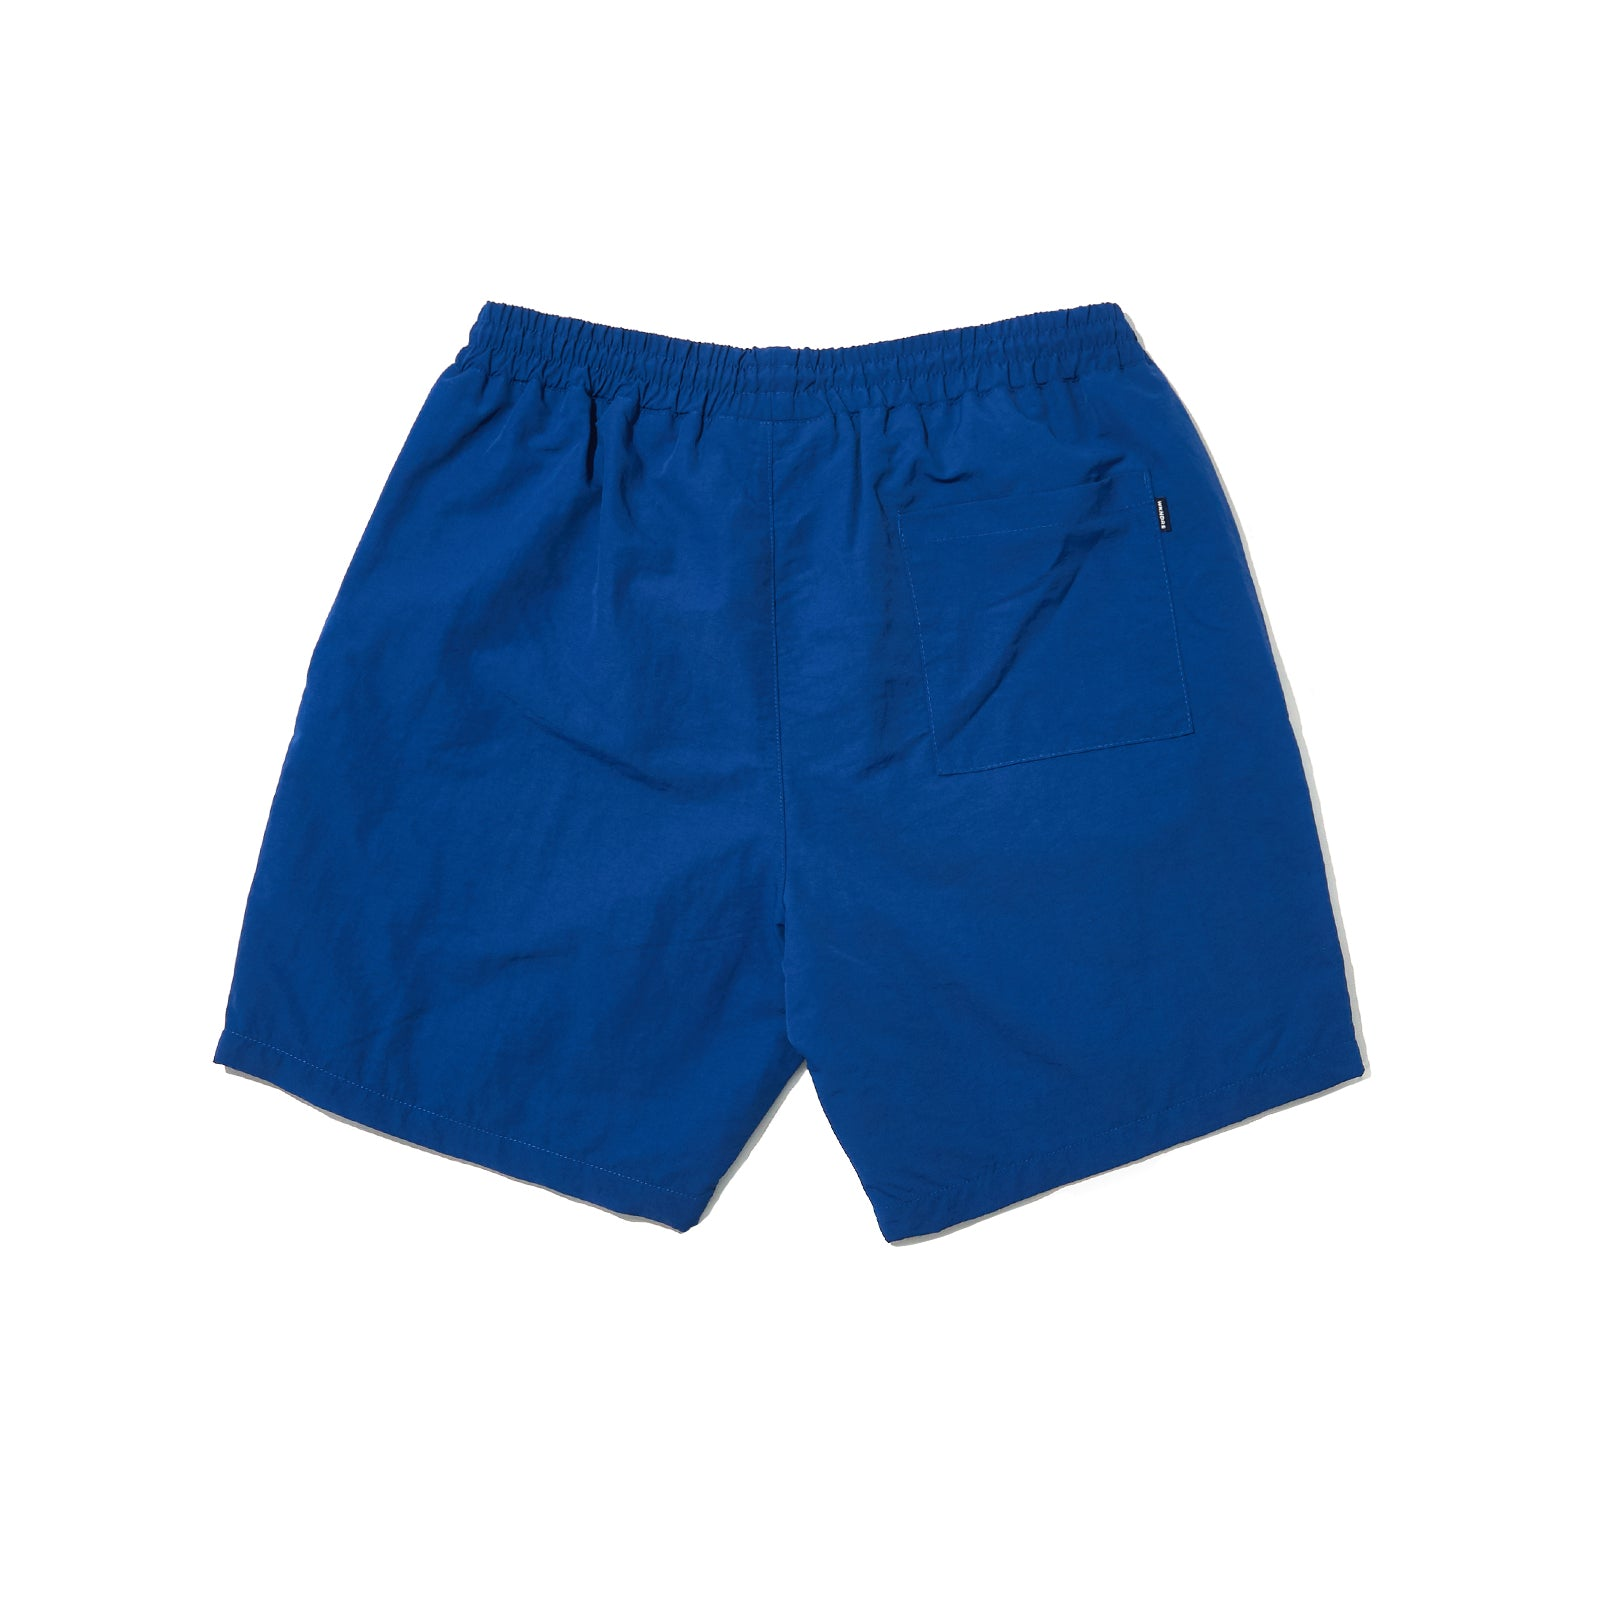 ATHLETIC SHORTS (BLUE)